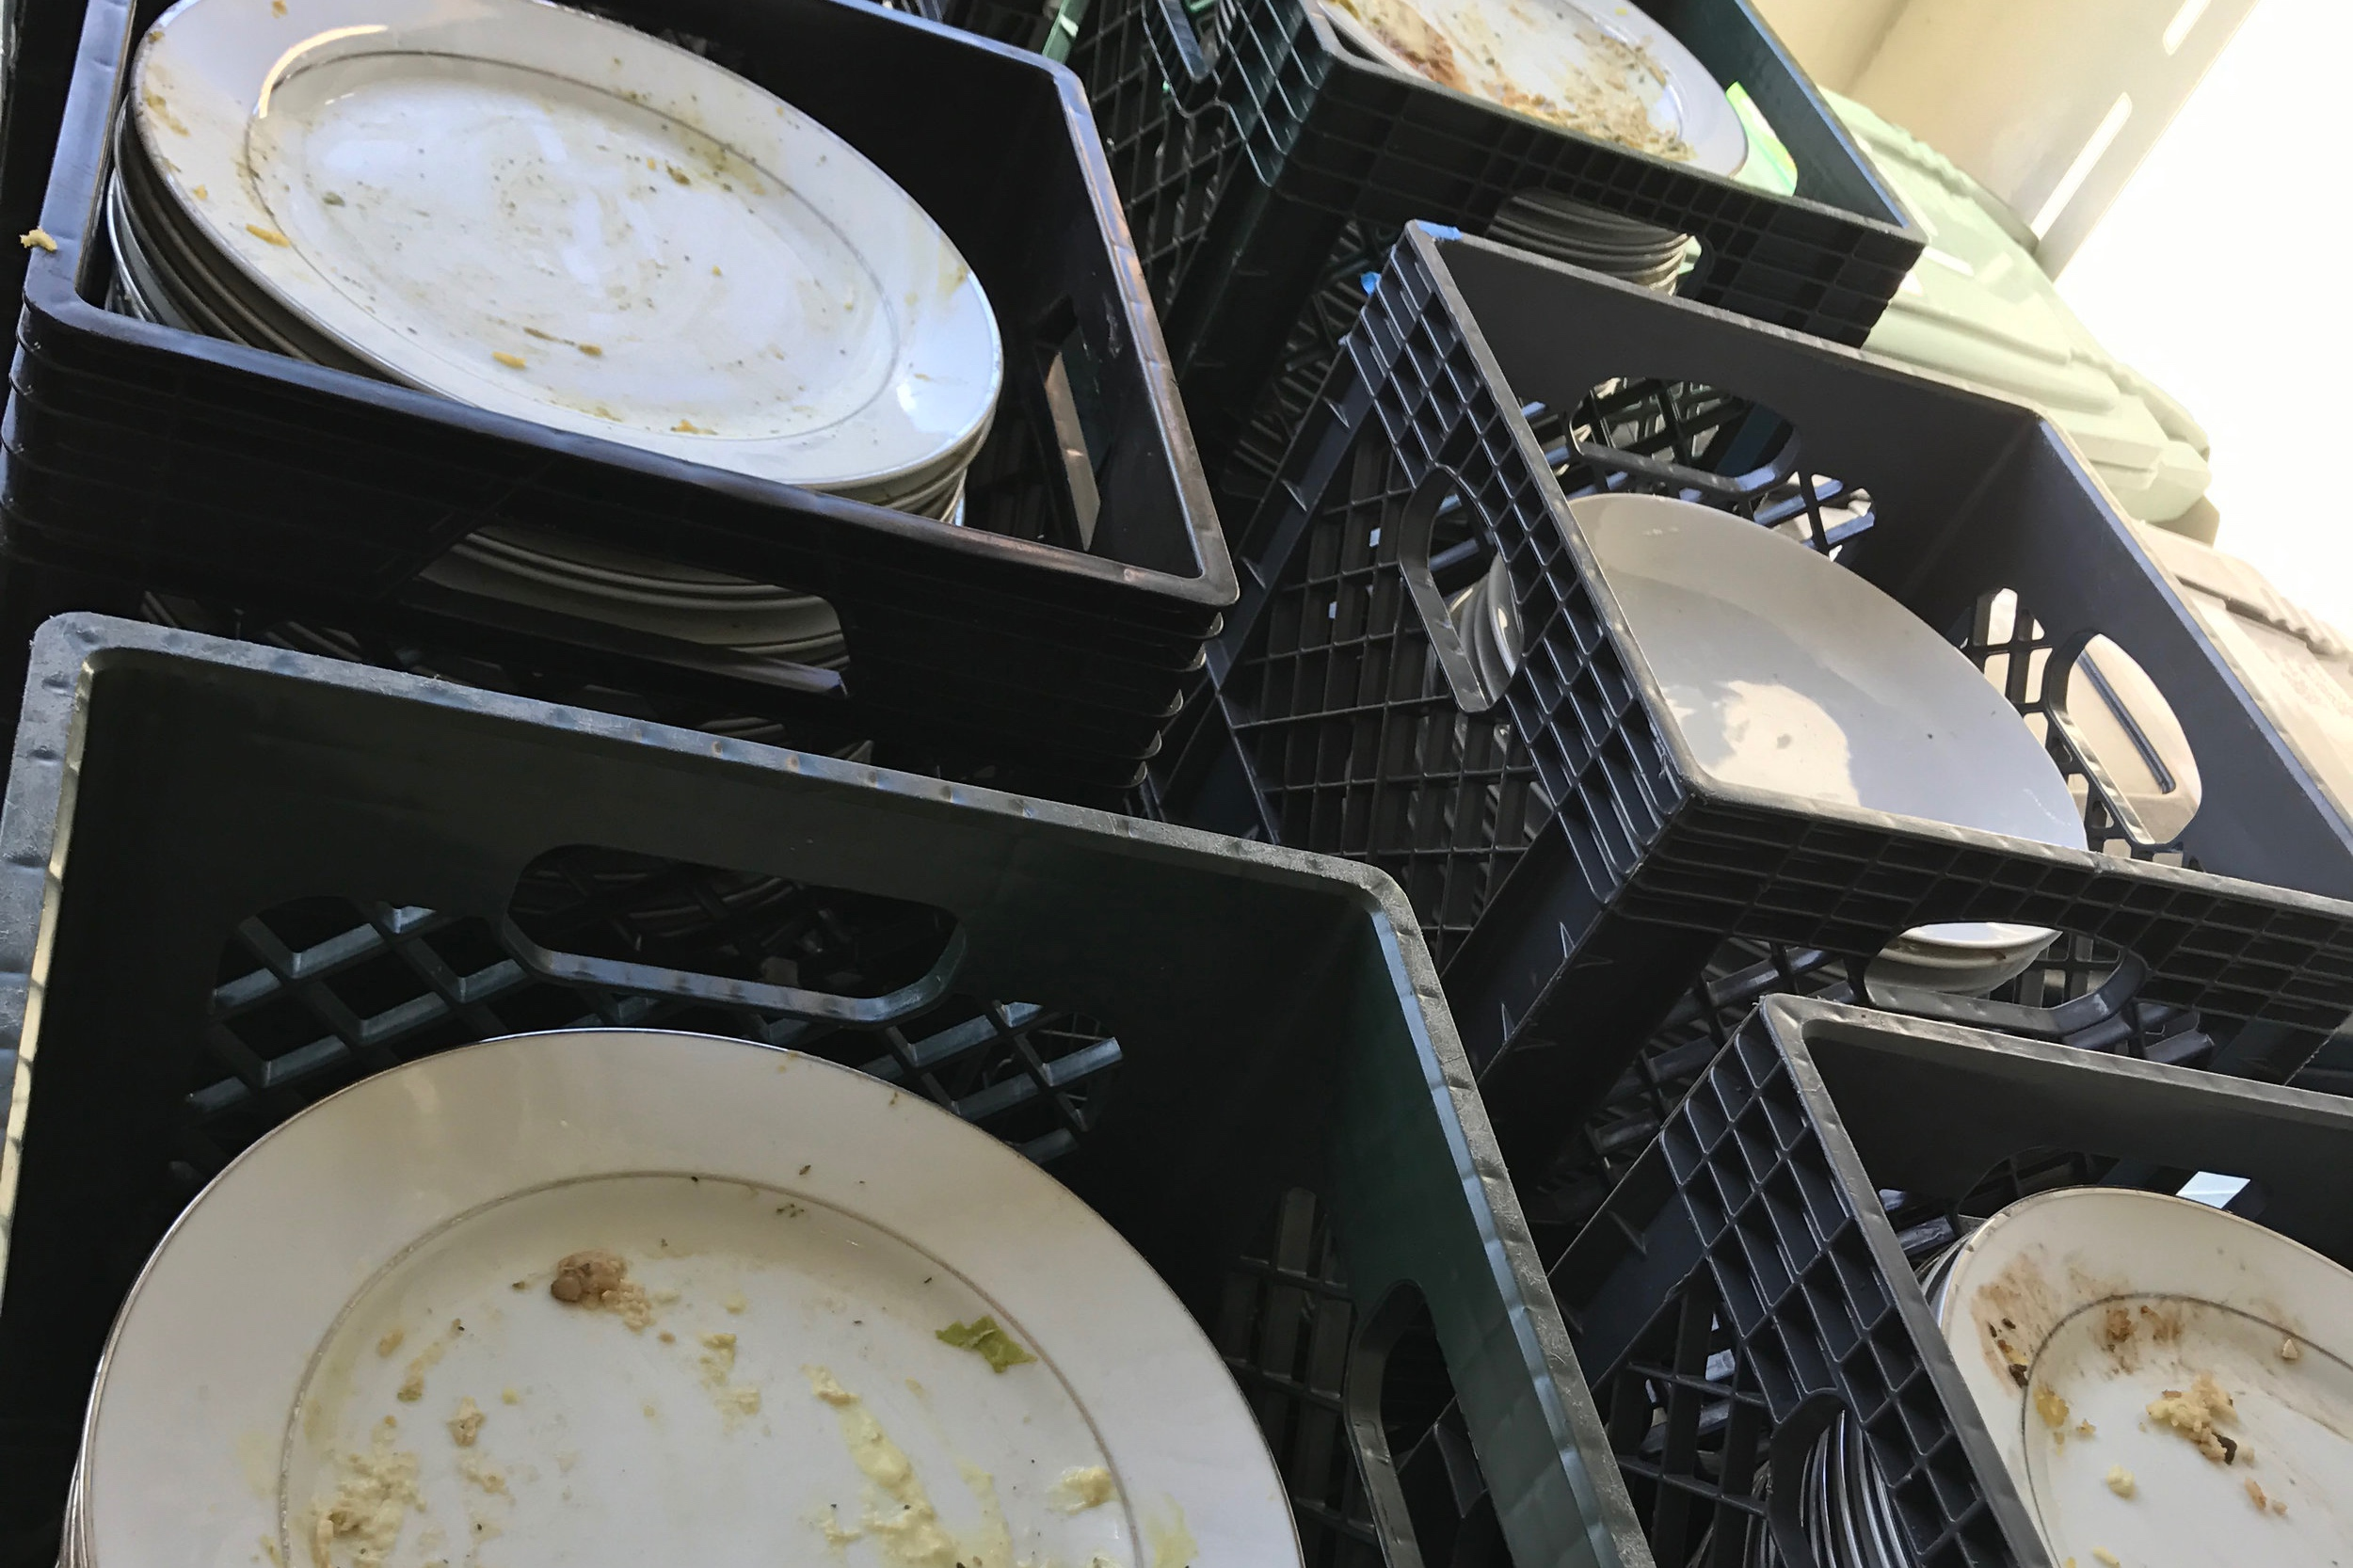 The arrival of the first batch of dirty plates to be cleaned by our robot